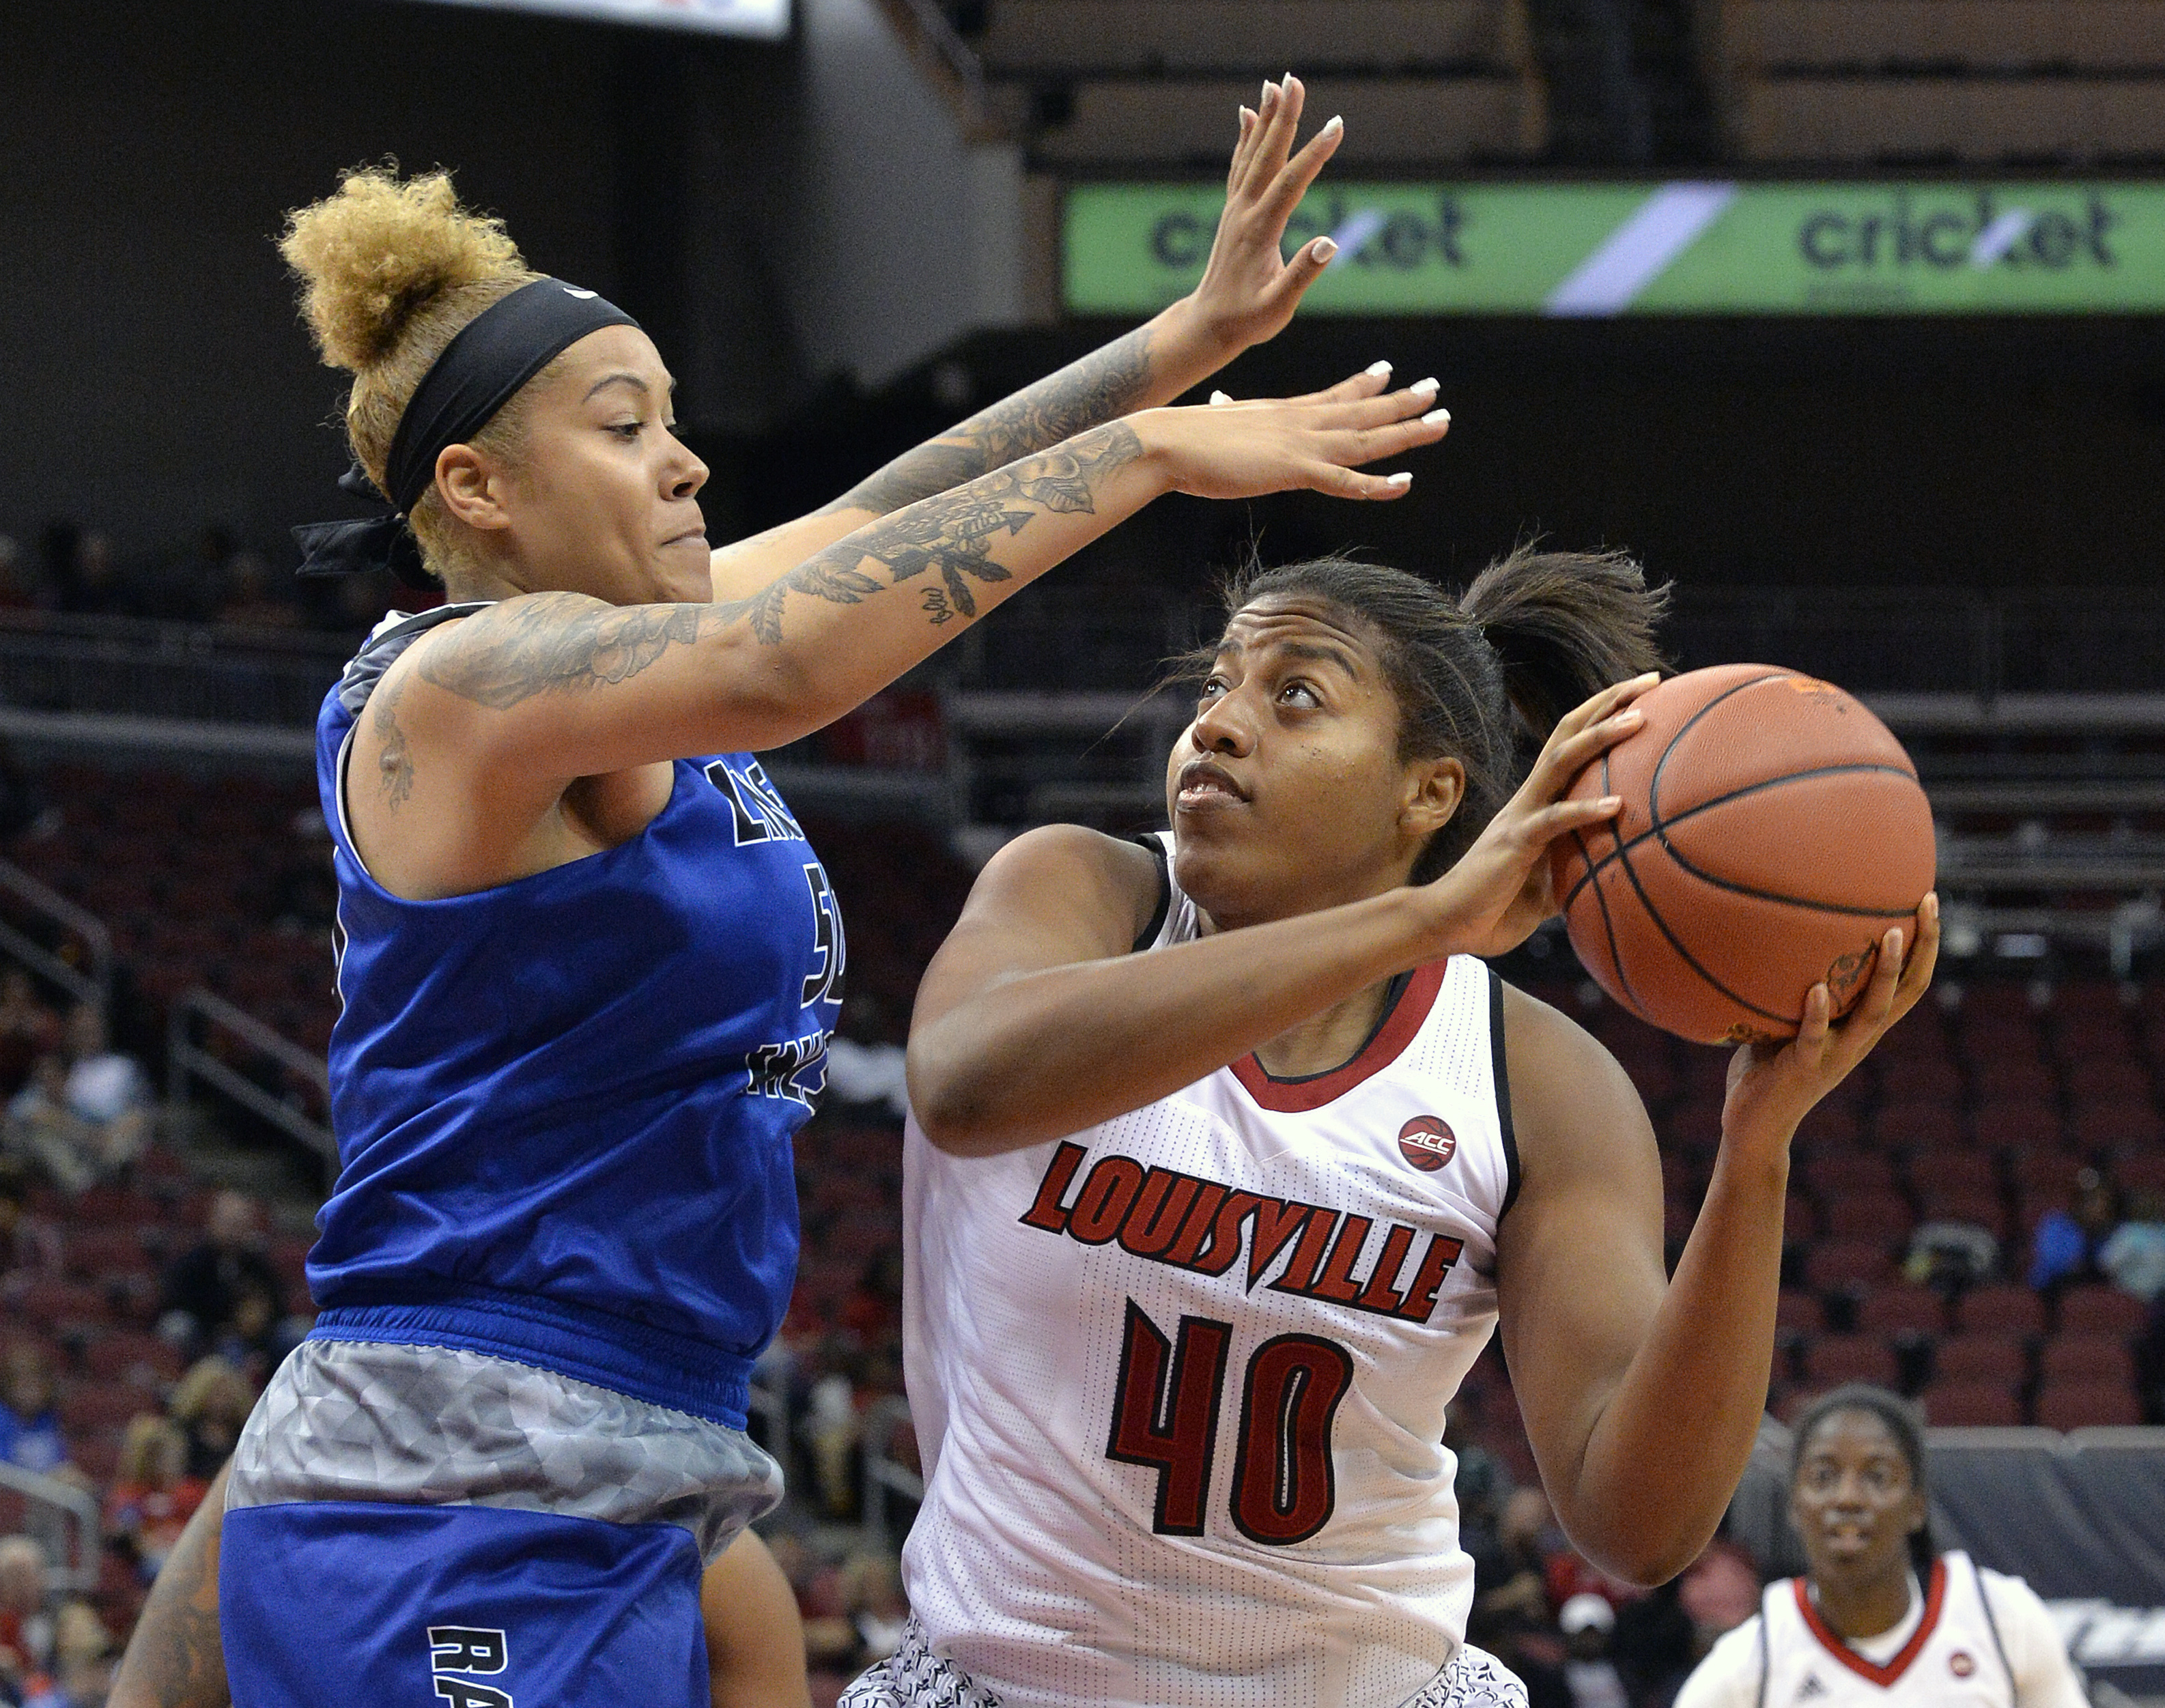 Louisville's Ciera Johnson (40) looks to shoot over the defense of Lindsey Wilson's Michelle Montgomery (50) during an NCAA college basketball exhibition game, Sunday, Nov. 6, 2016 in Louisville Ky. (AP Photo/Timothy D. Easley)